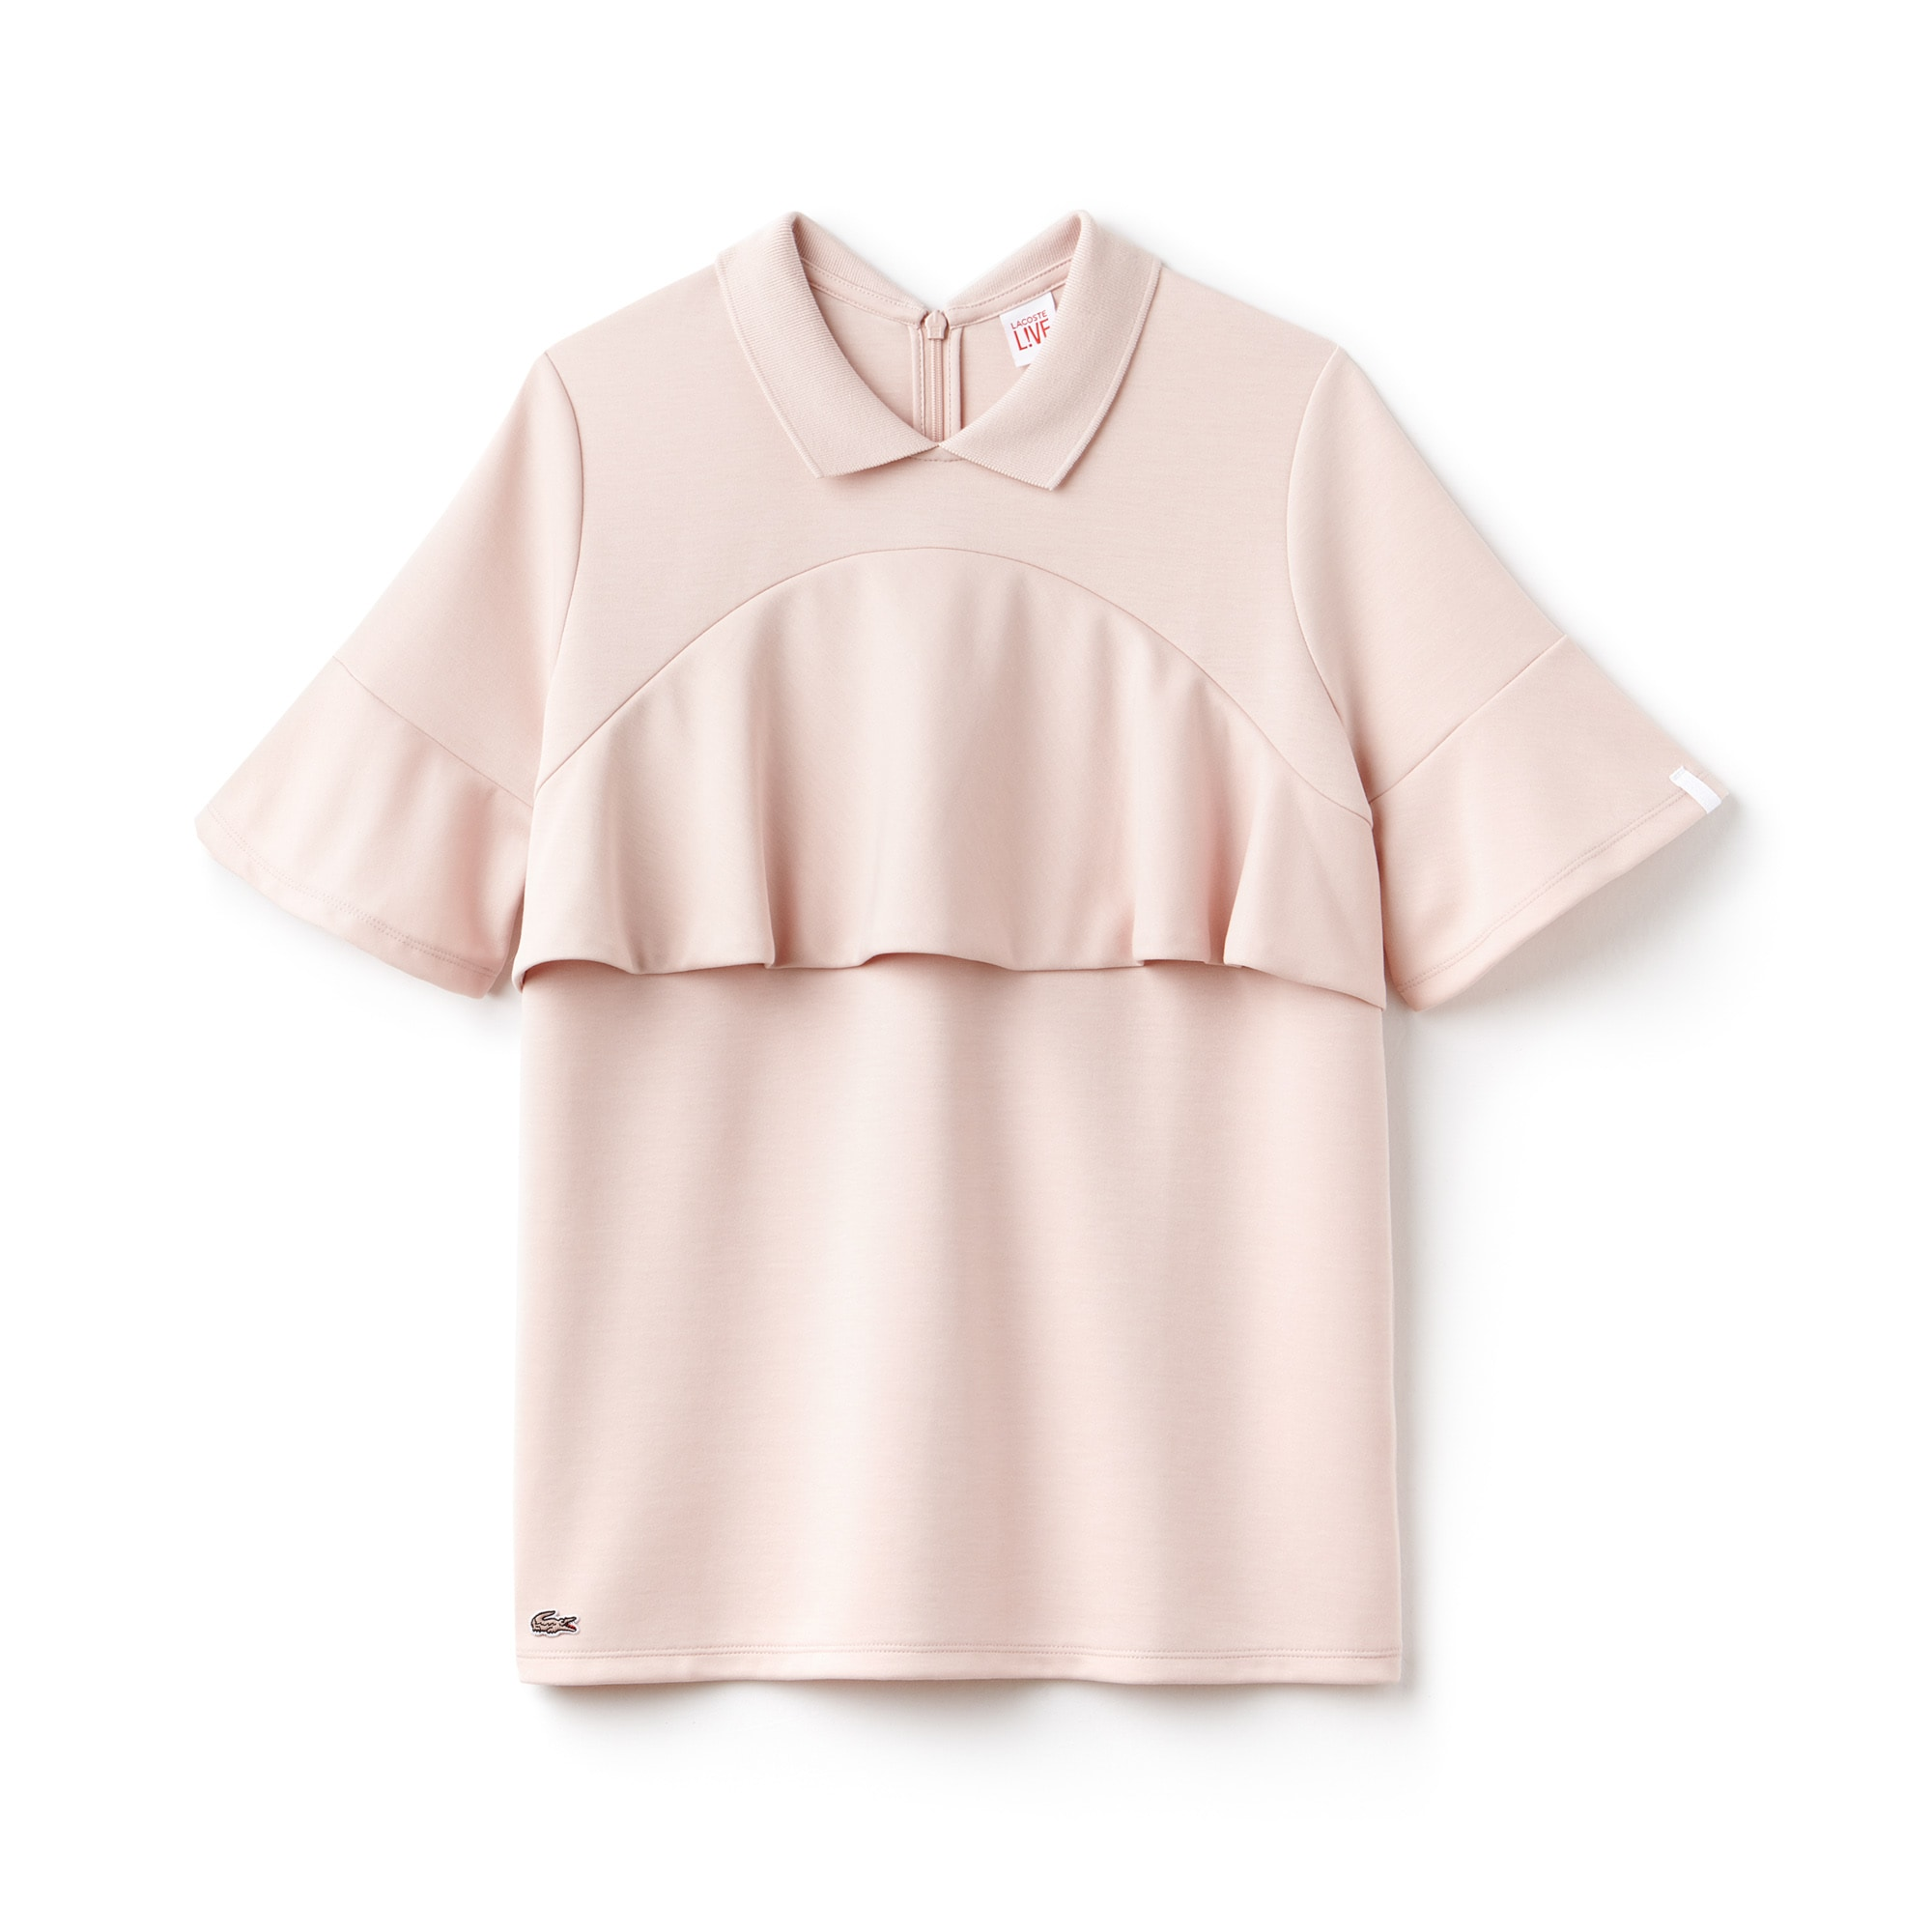 Women's Lacoste LIVE Boxy Fit Flounces Jersey Polo